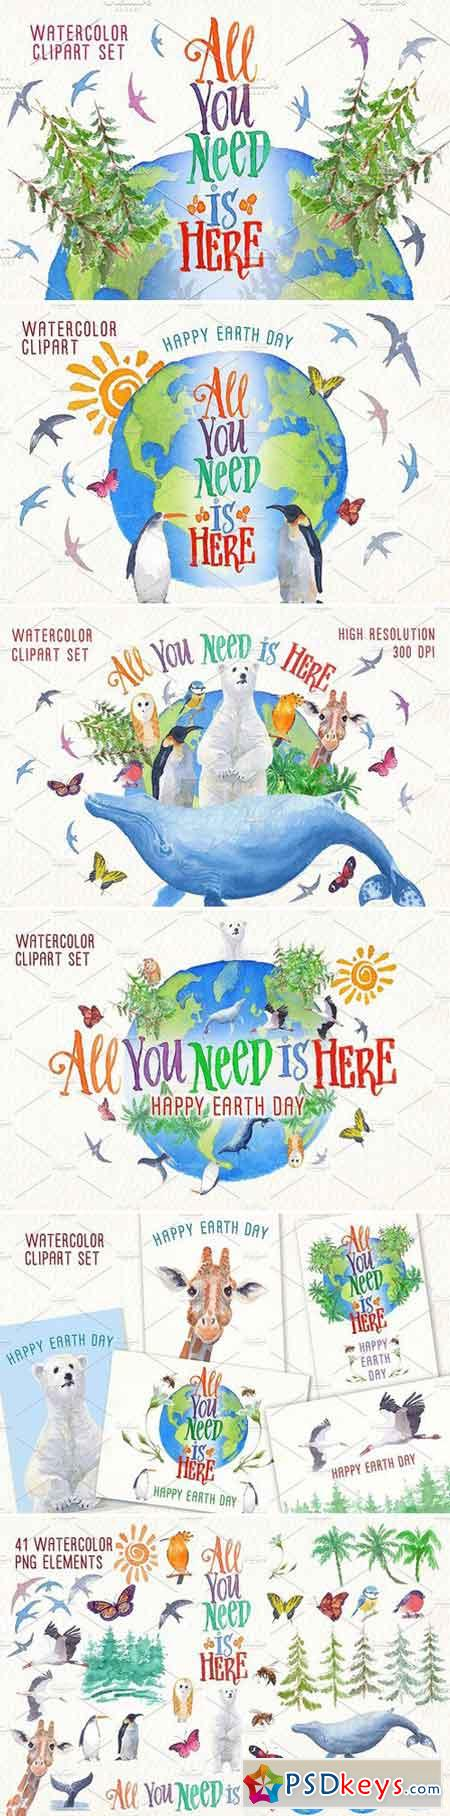 earth day watercolor clip art set 2430364